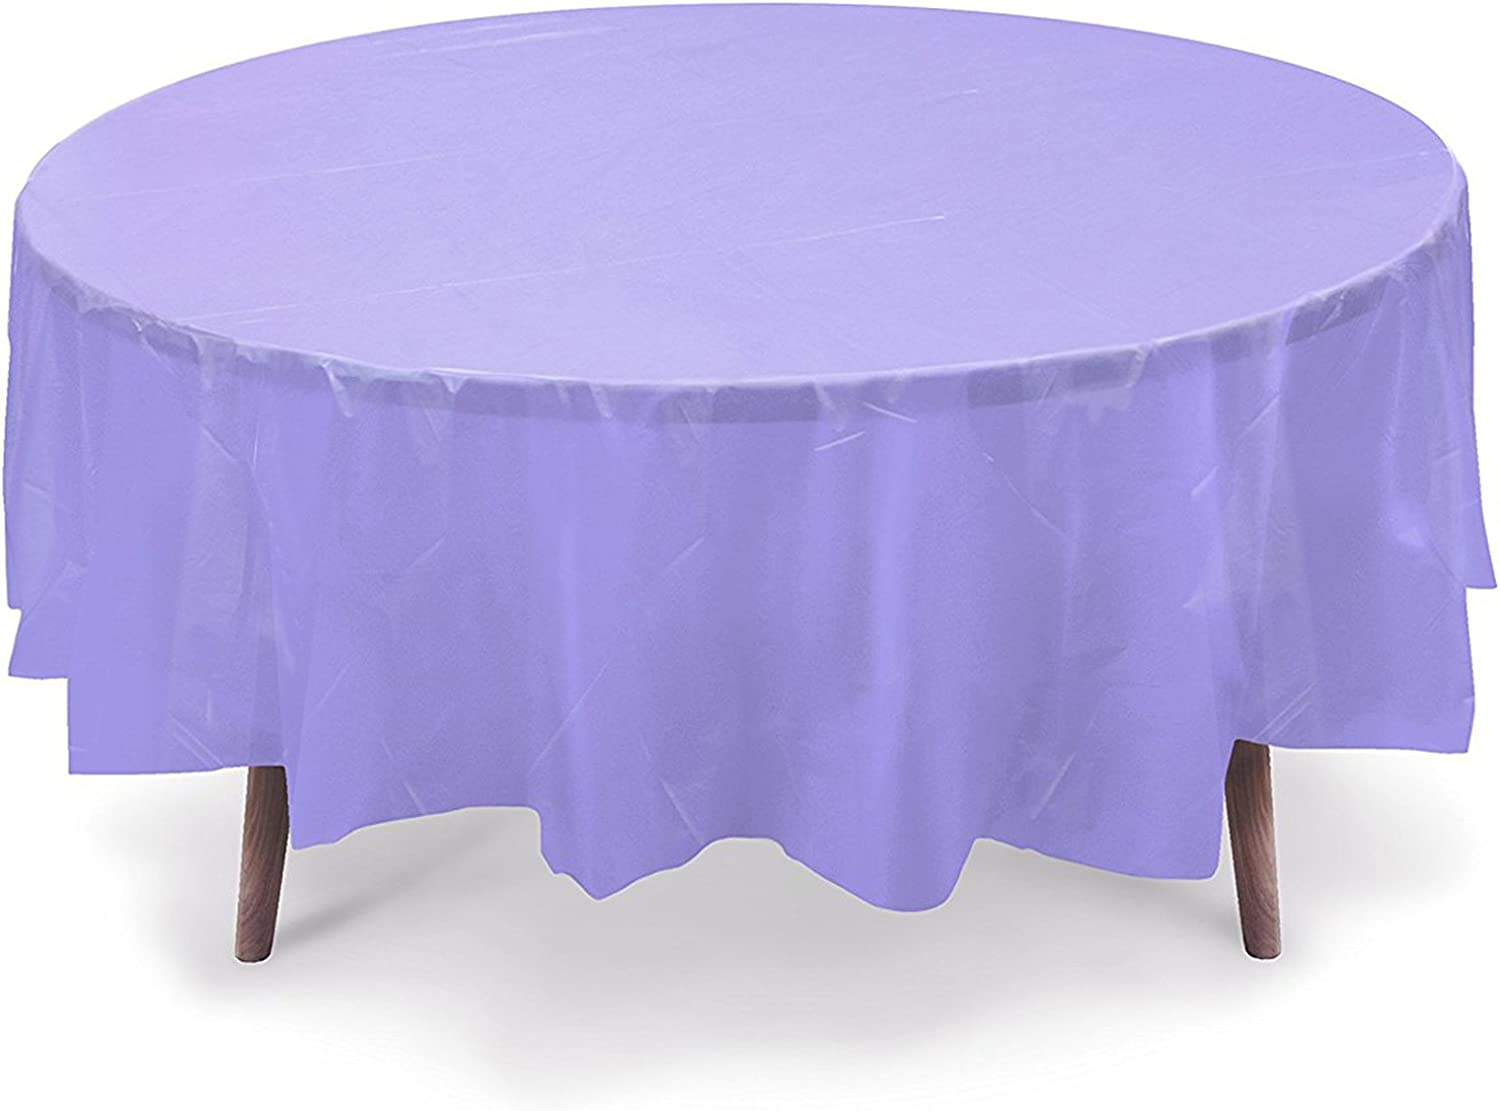 """10 PACK 84"""" Round Plastic Table Cover, Plastic Table Cloth Reusable (PEVA) (Lavender)"""